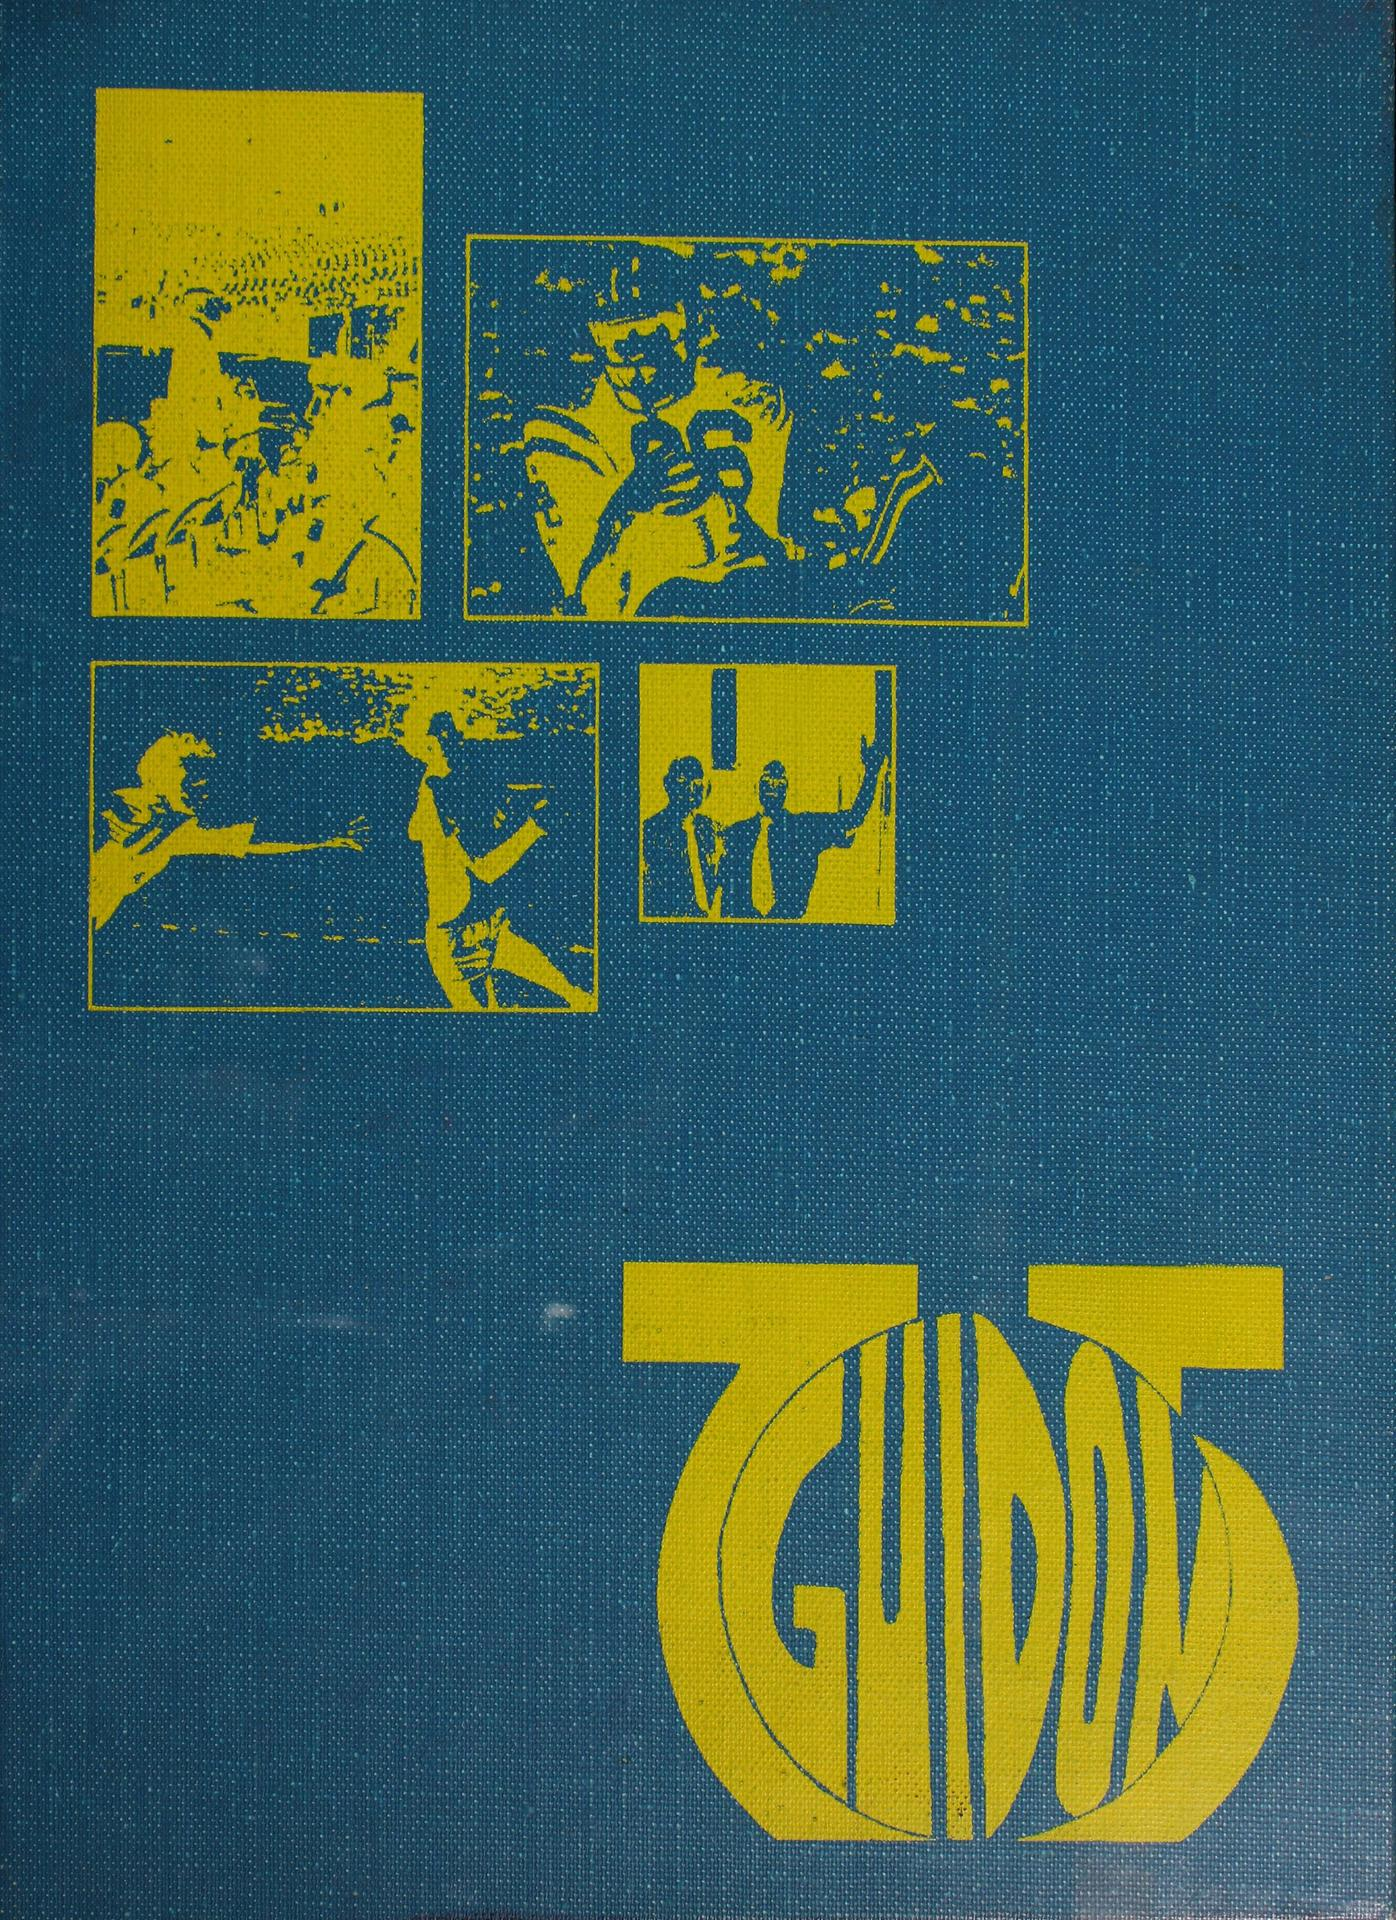 1975 CBC Yearbook